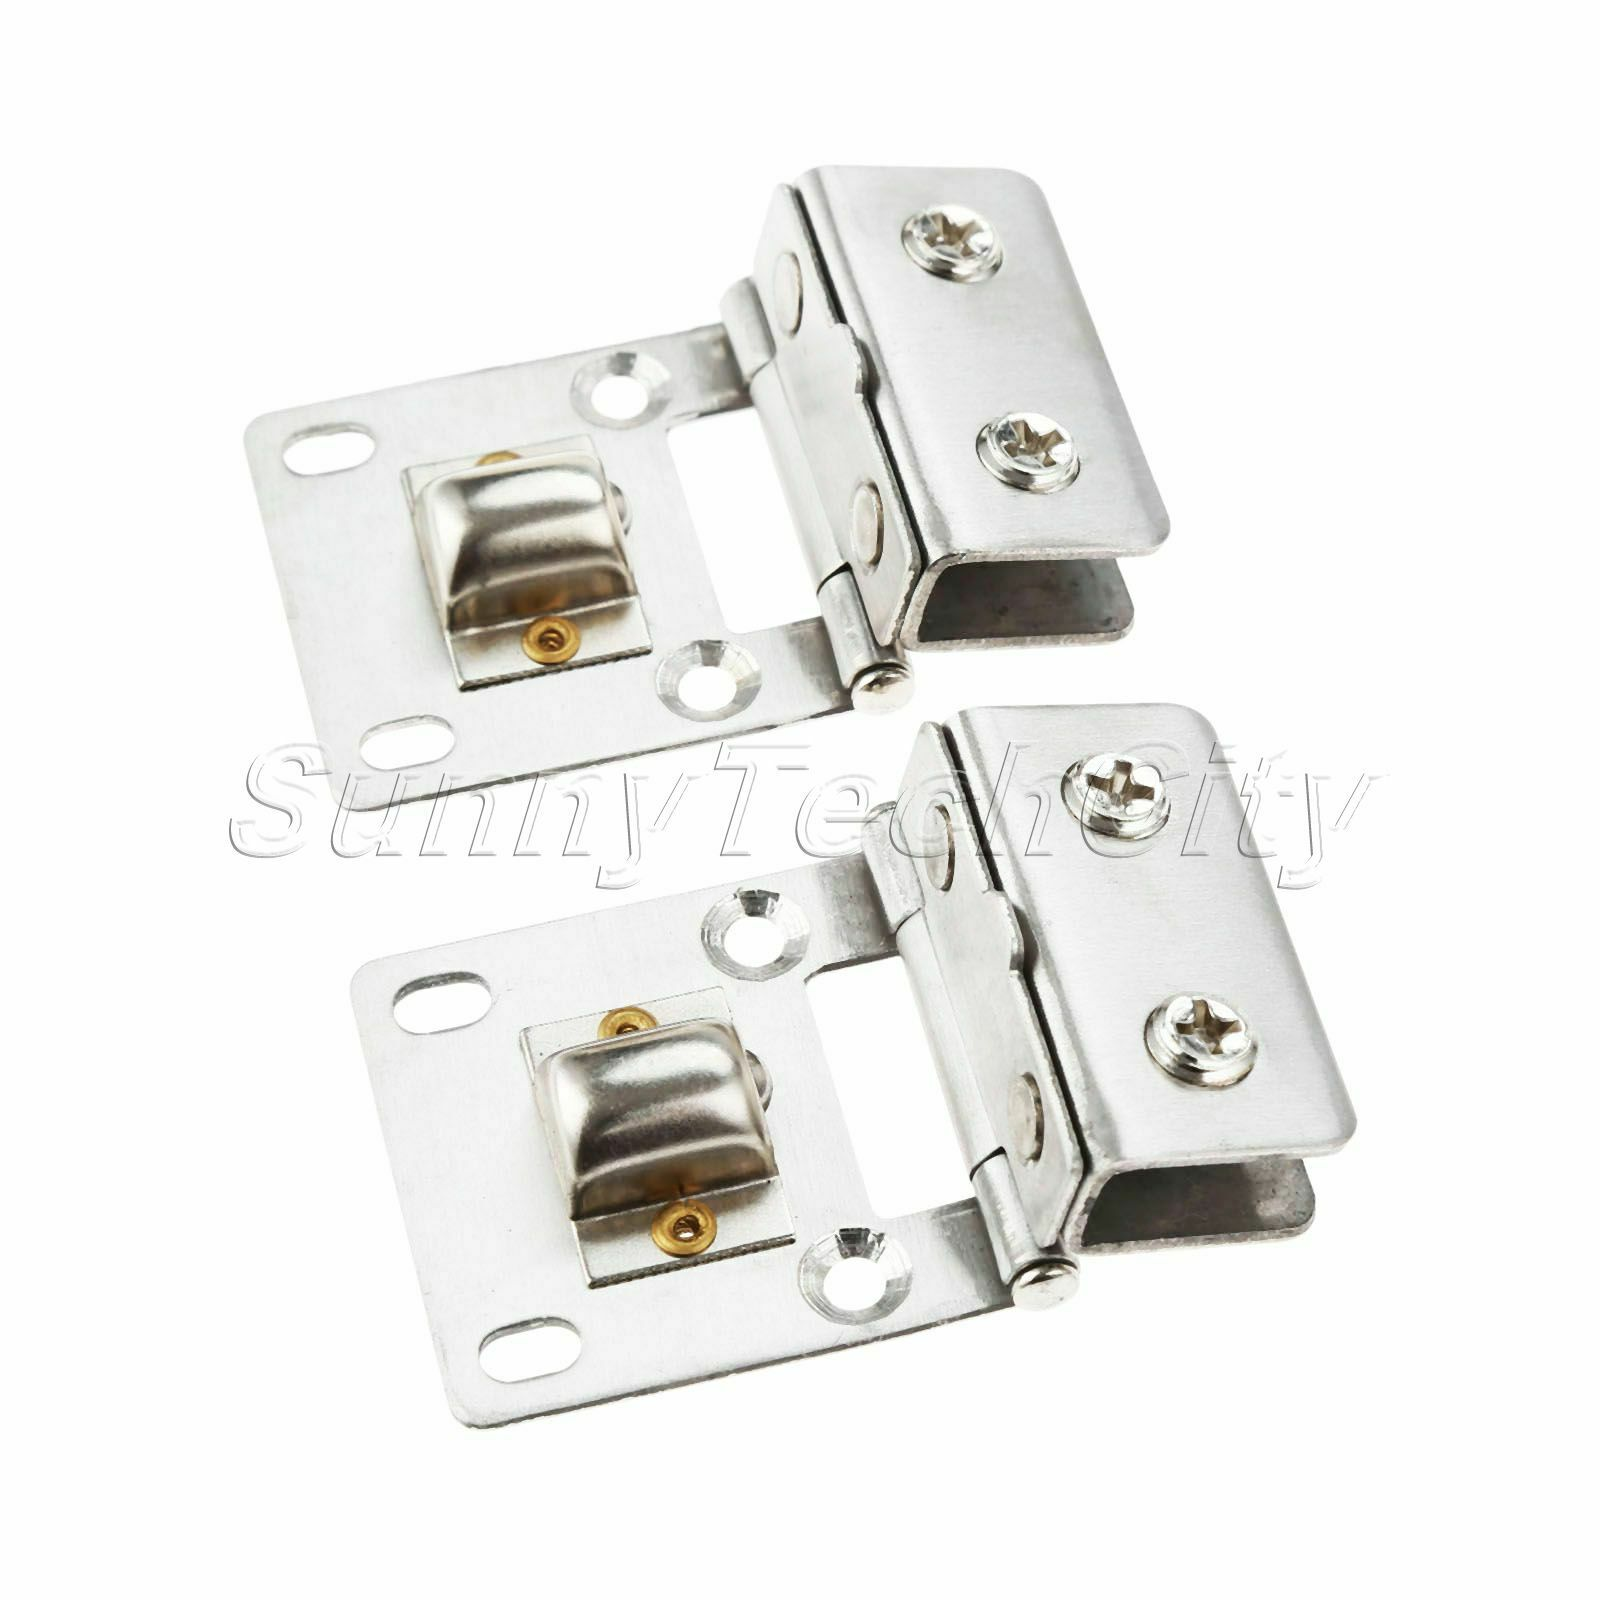 2pcs Wall Mount Door Pivot Hinge For 5 8mm Glass Stainless Steel Shower Clamps